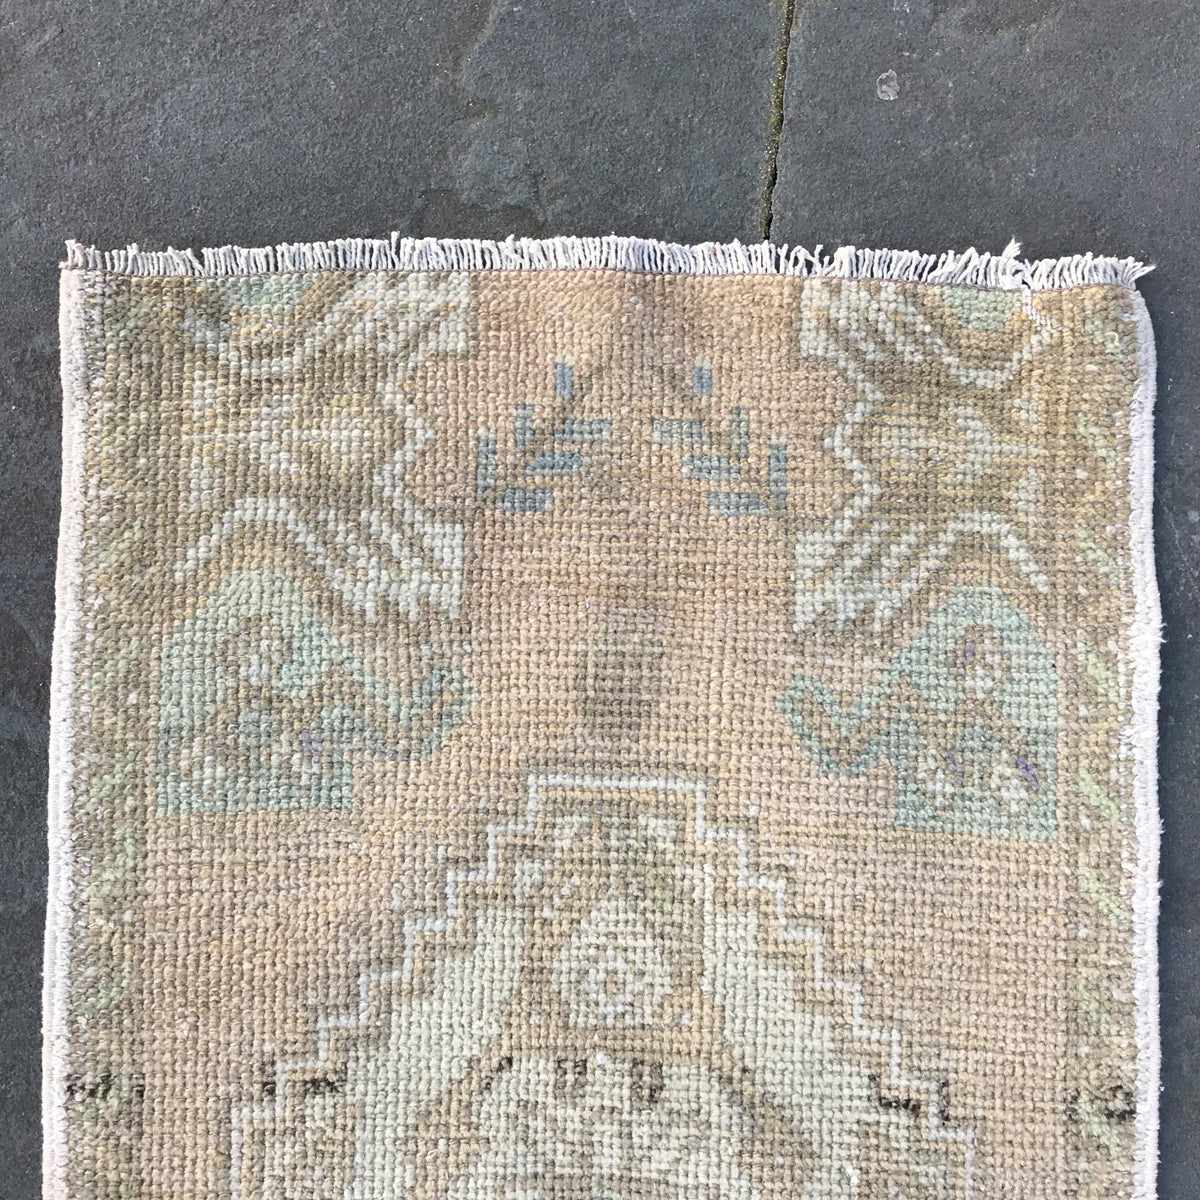 This small handwoven vintage Turkish rug has subtle hints of teals, greens, and lavender! Great for entryways, bathrooms, kitchens and layering. 19x36 inches.